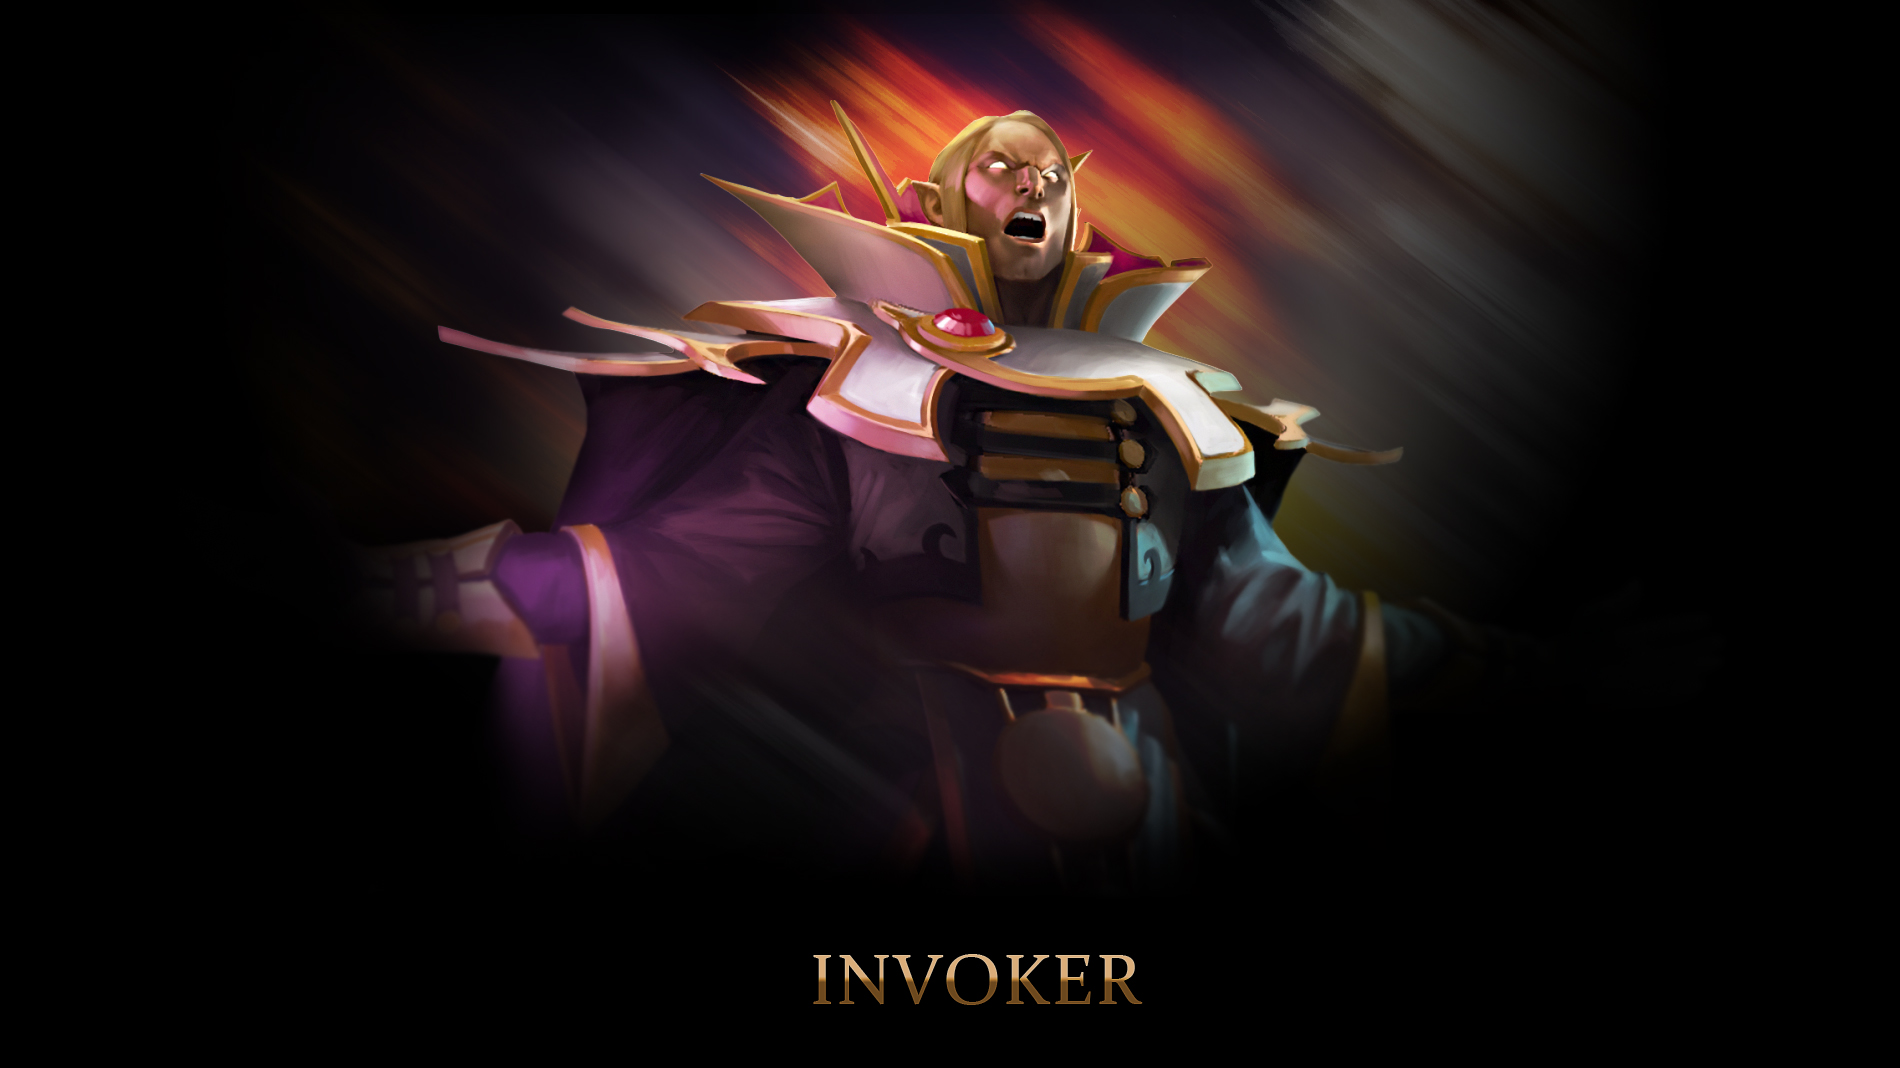 invoker dota 2 by yonggfx fan art wallpaper games 2012 2015 yonggfx 1900x1068